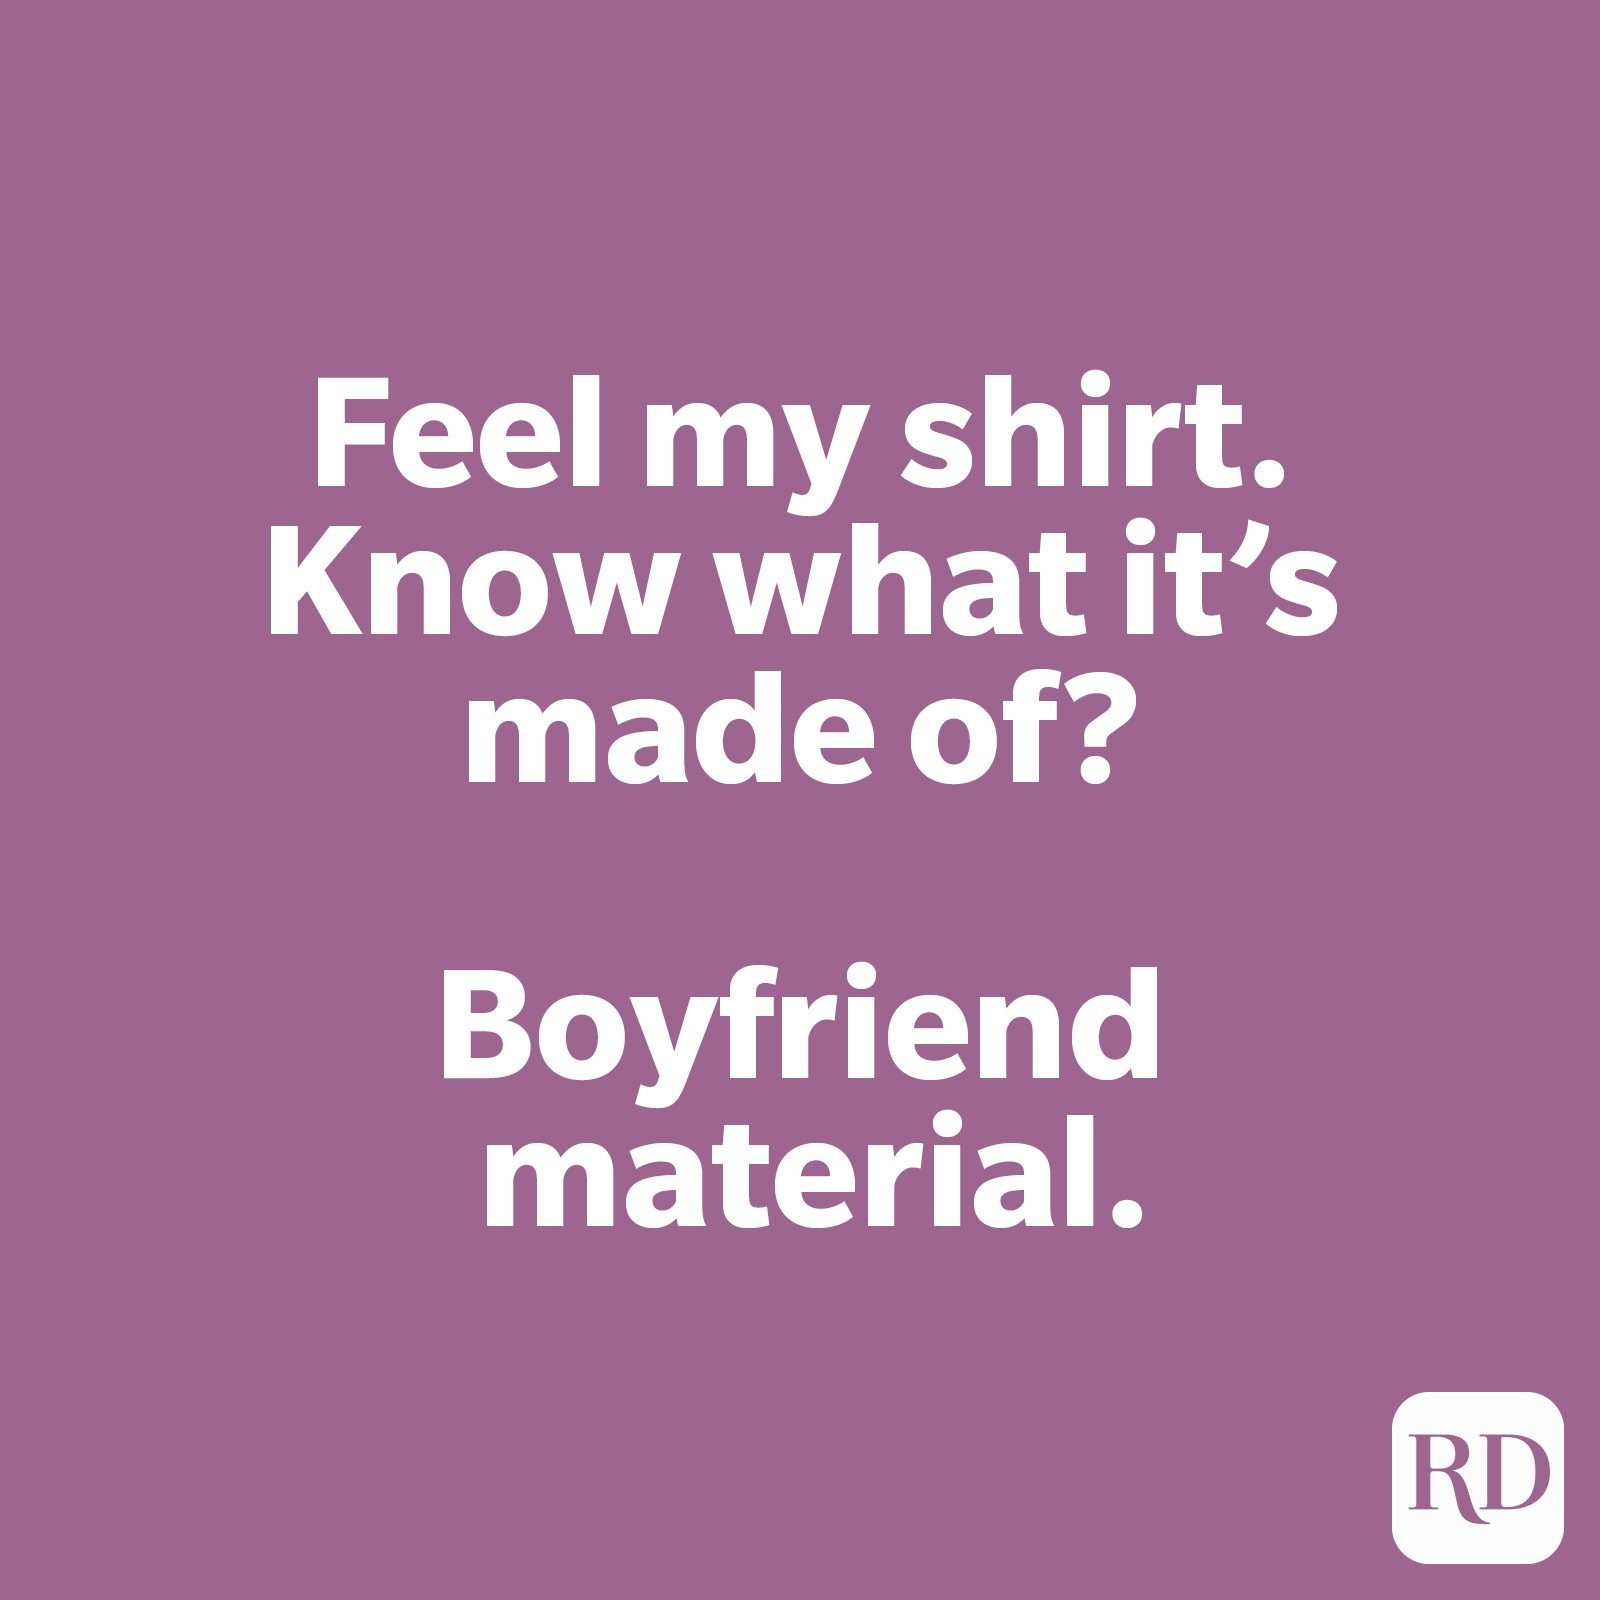 Feel my shirt. Know what it's made of? Boyfriend material.